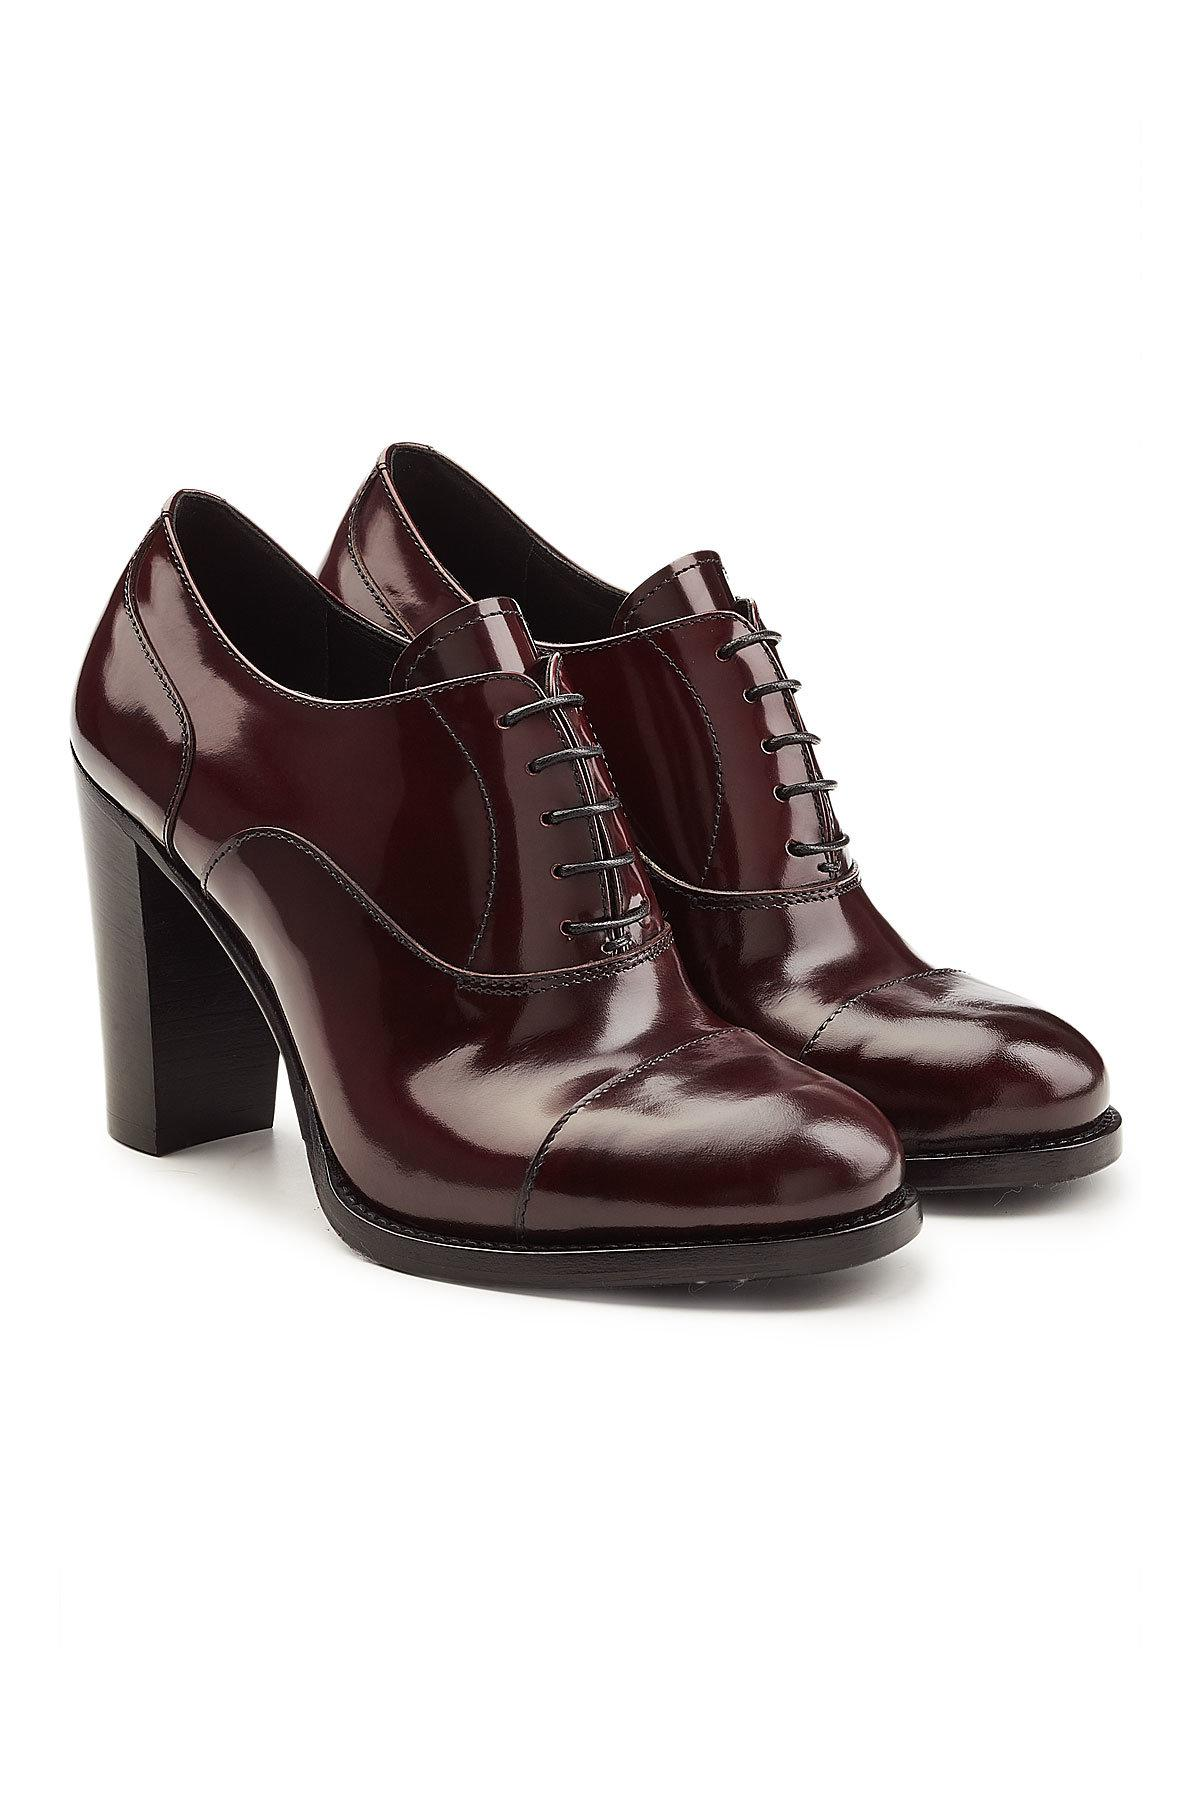 Church's Patent Leather Lace Ups KnJey